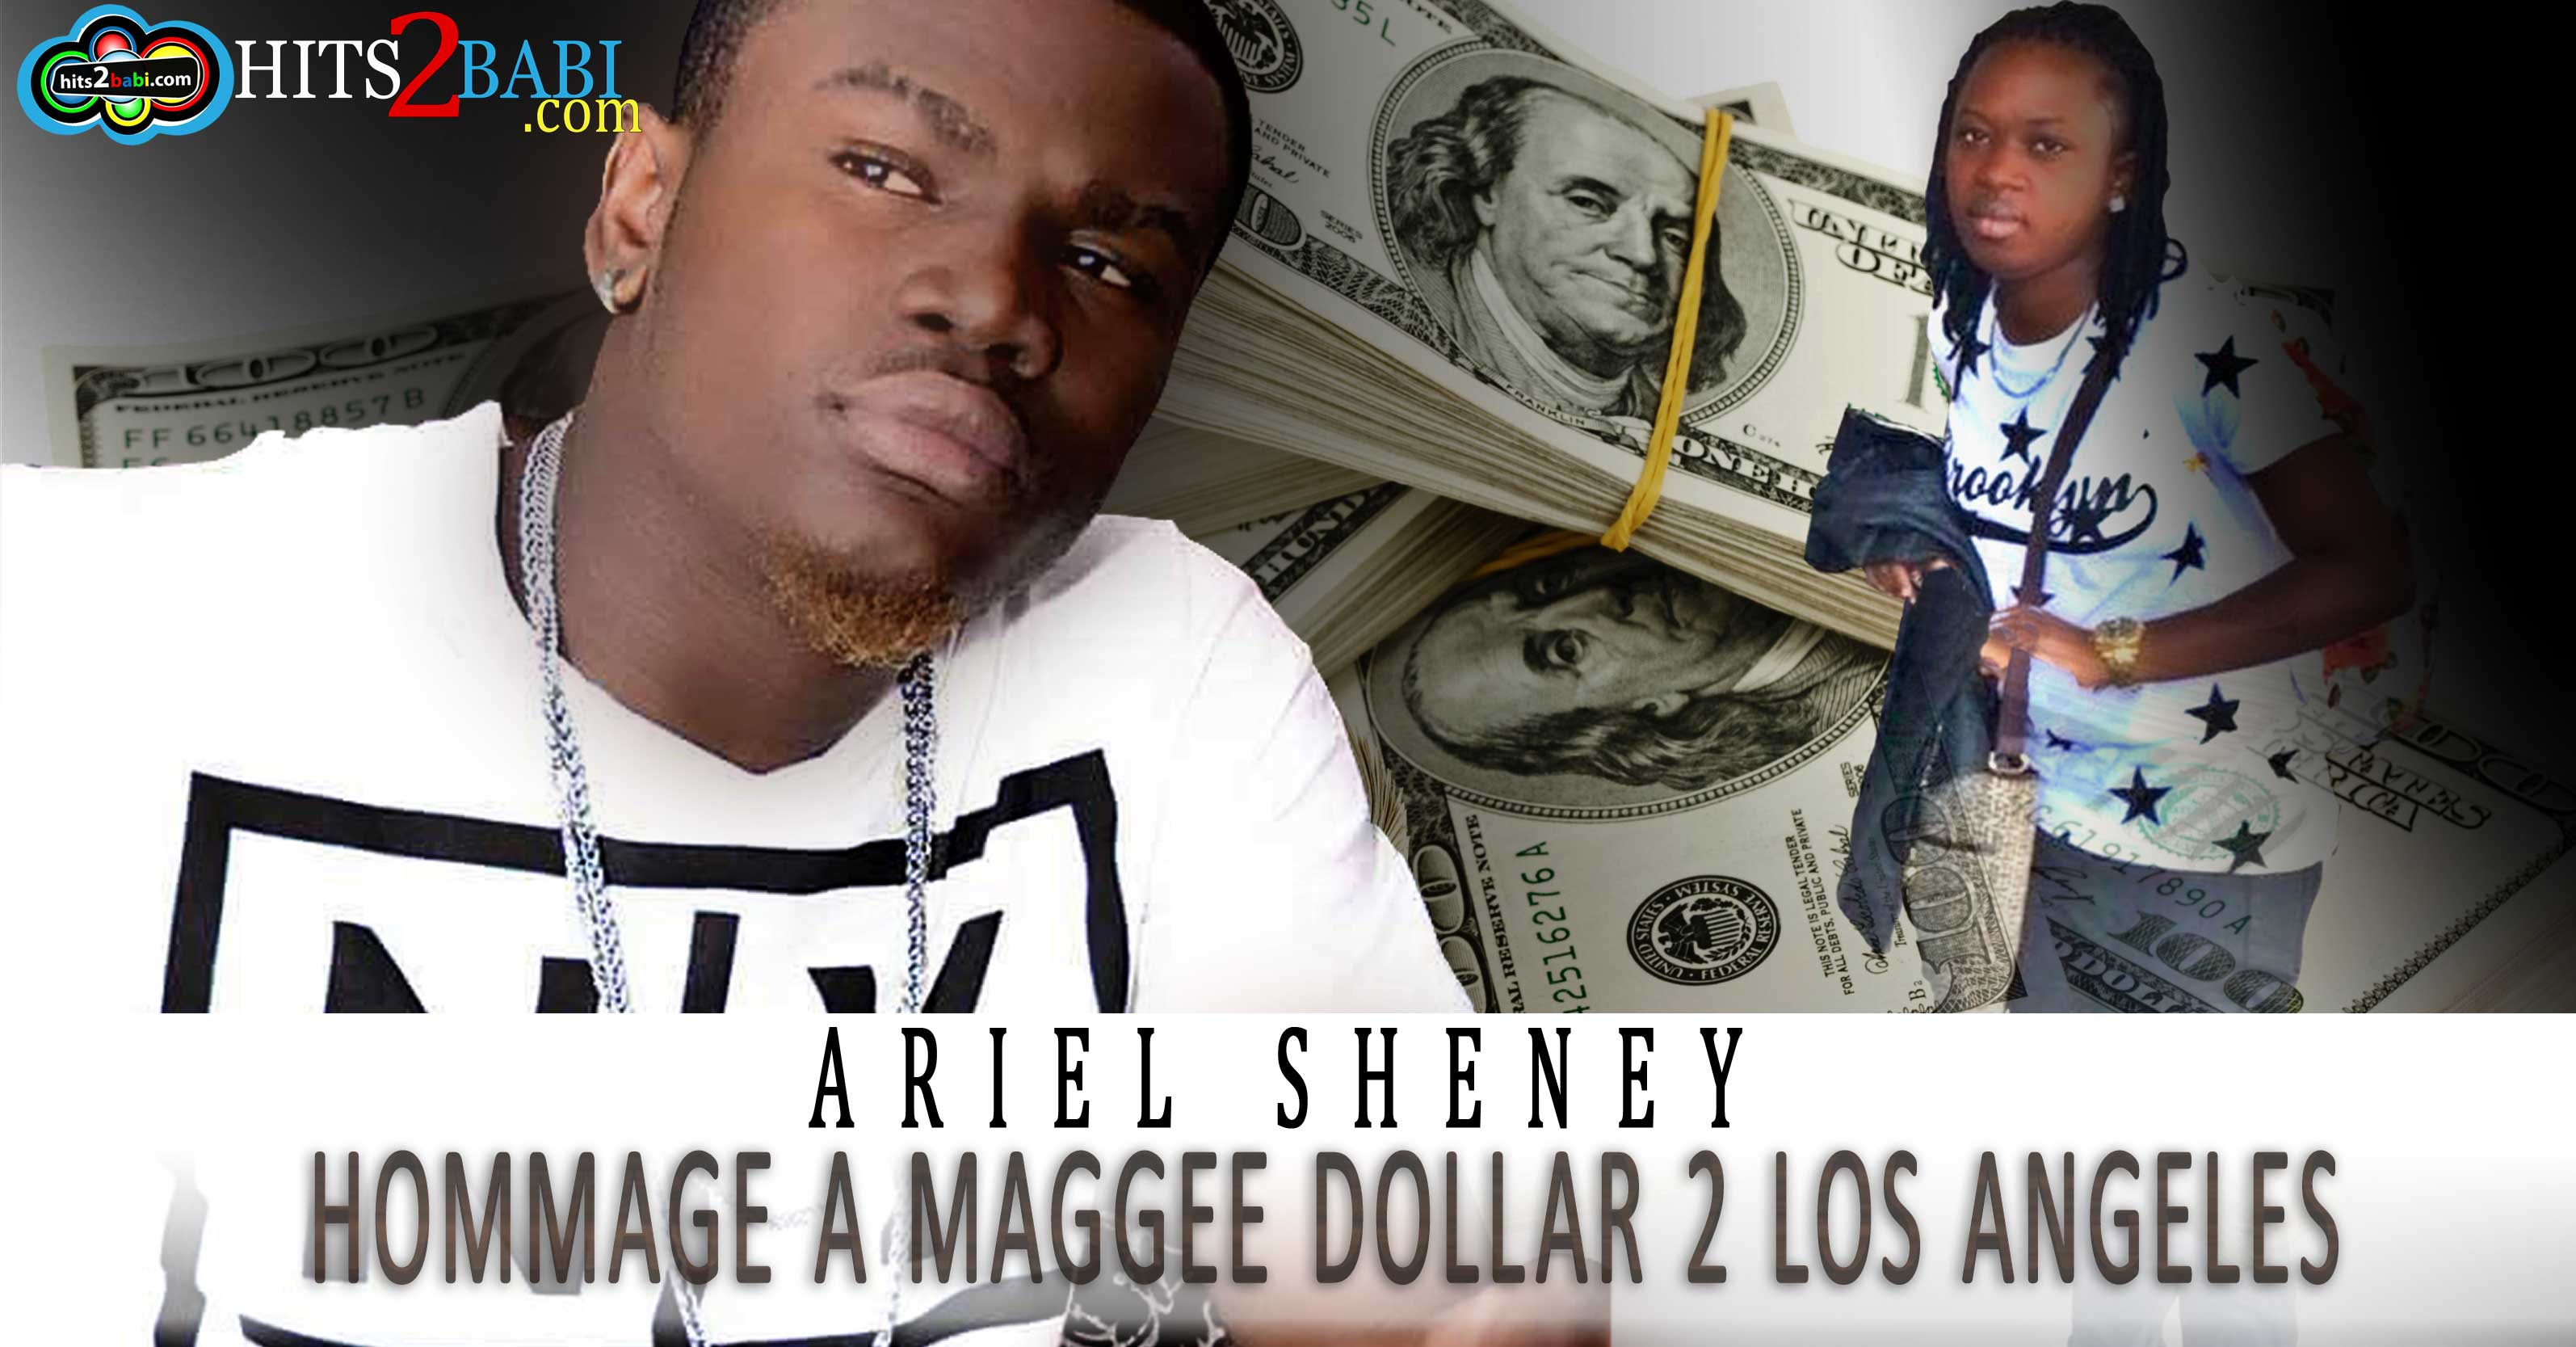 ARIEL SHENEY - Hommage a Magea Dollars 2 Los Angeles